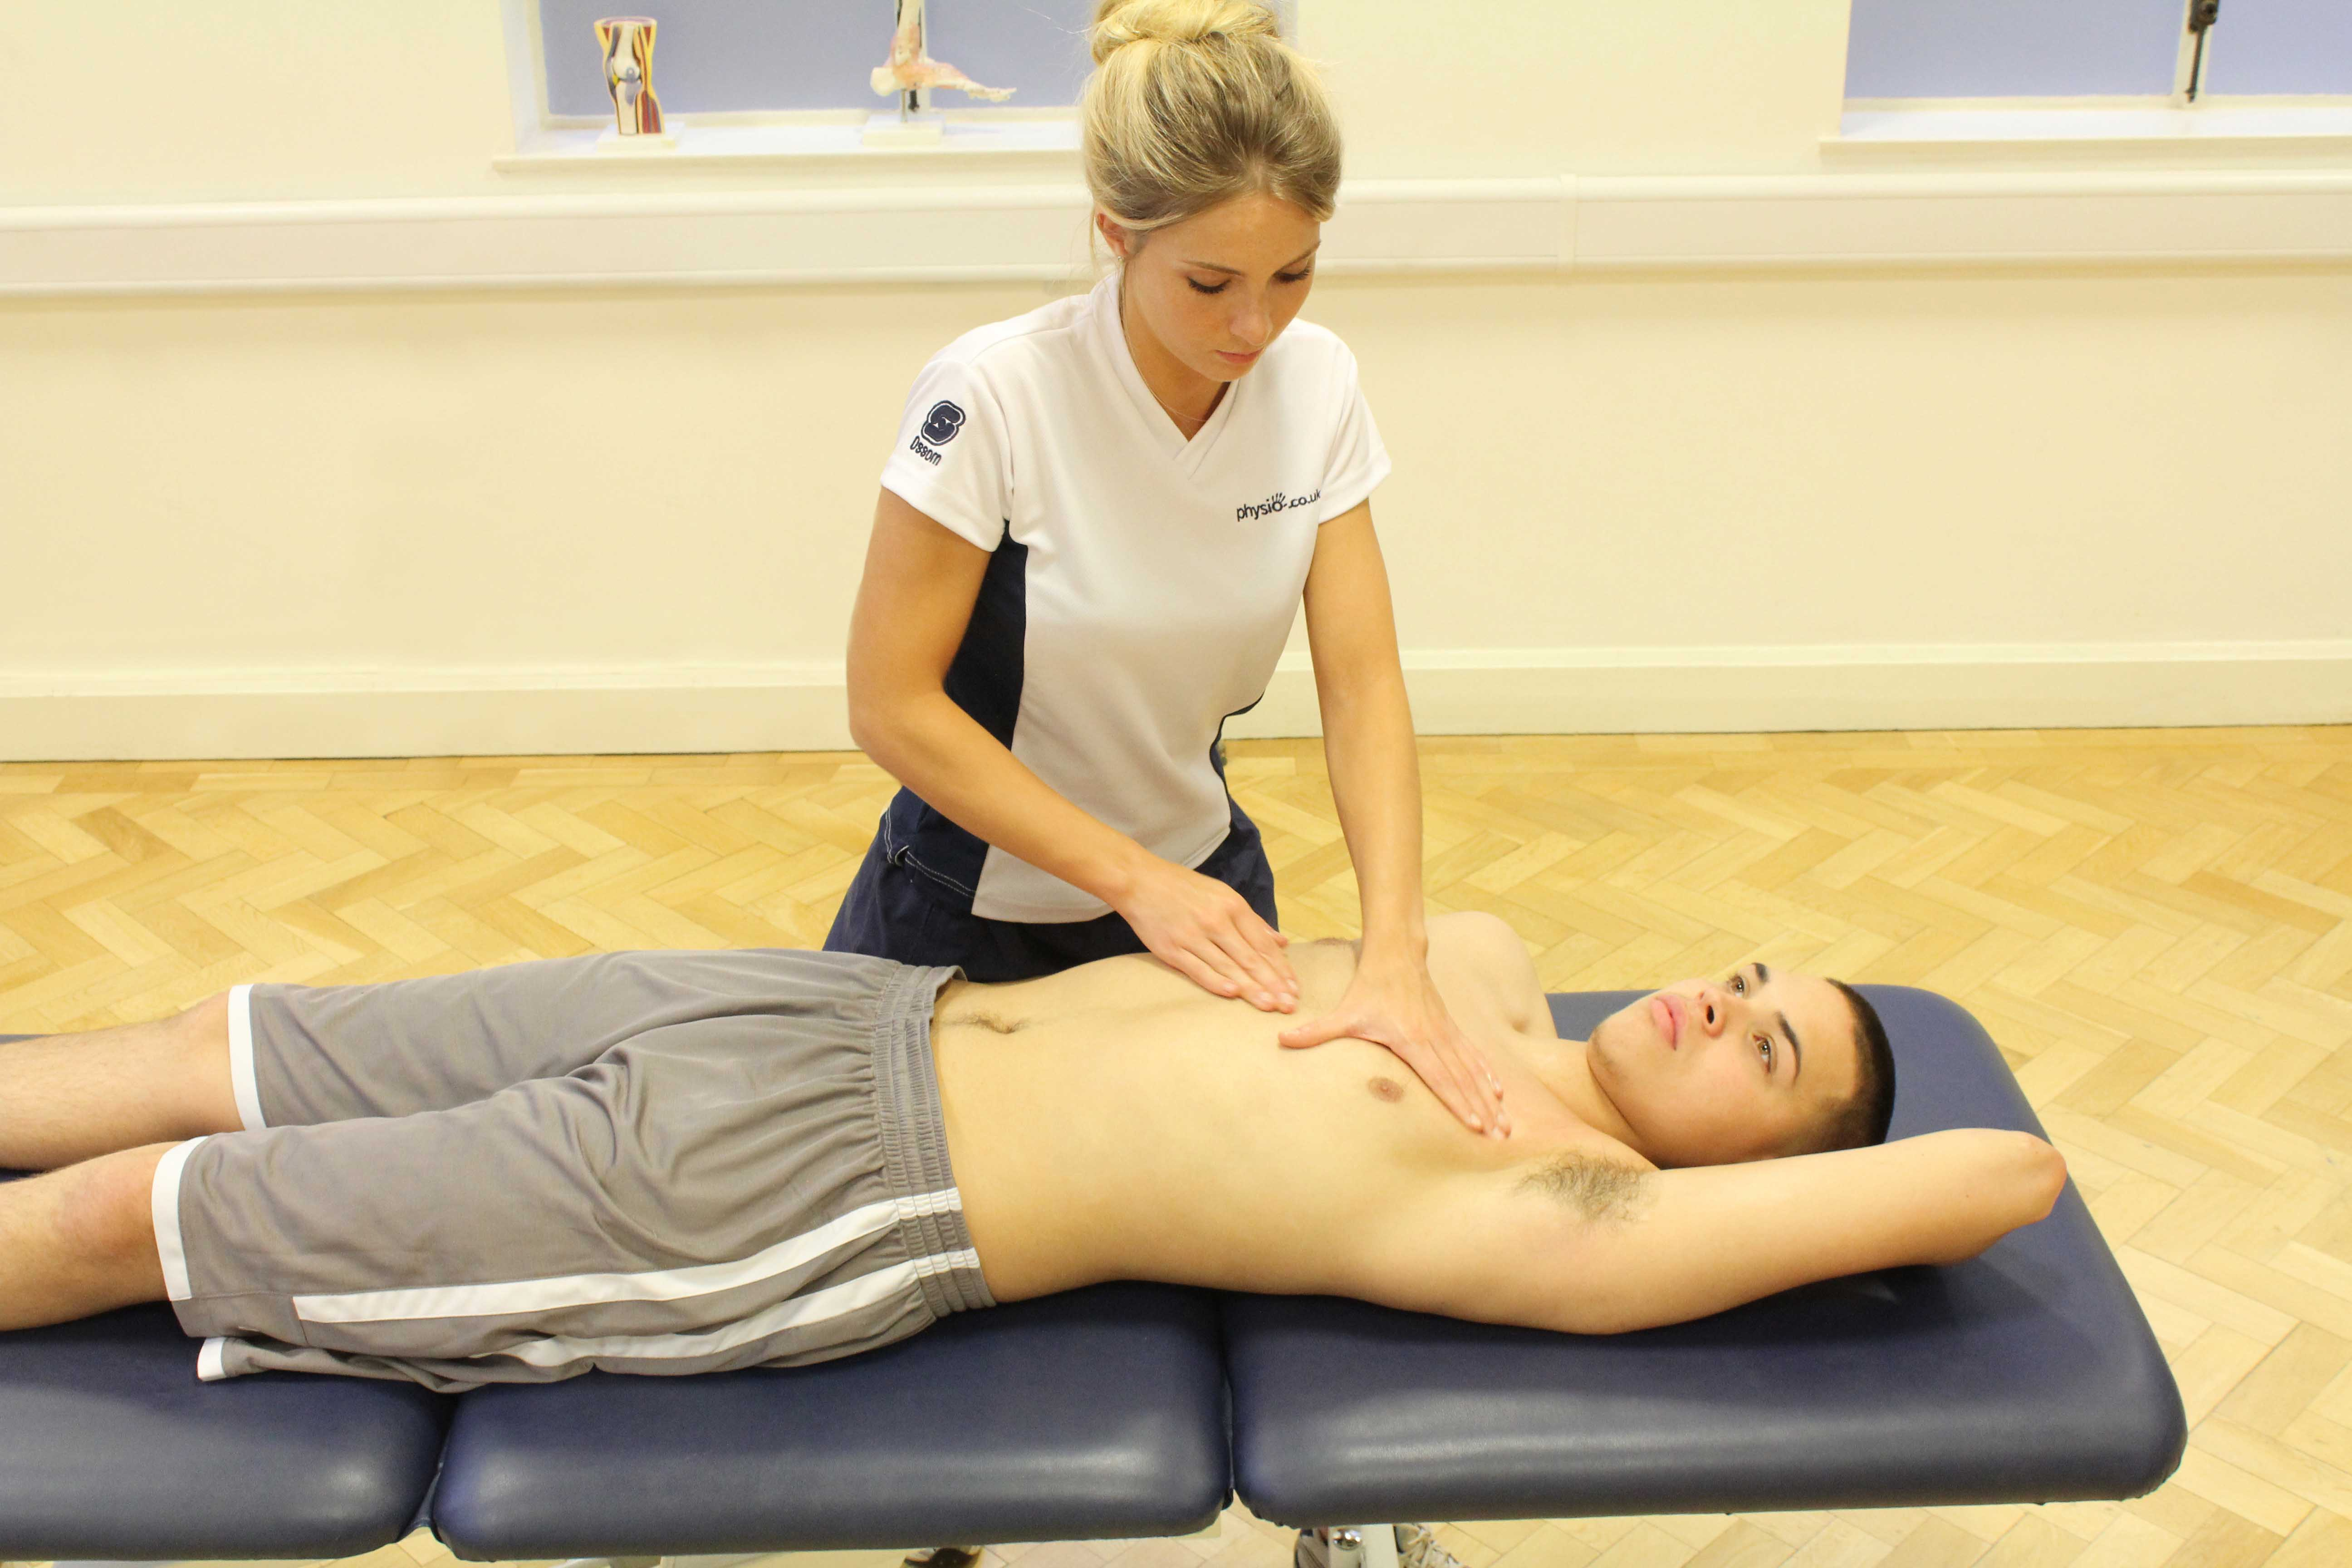 Deep tissue massage of the gatroc nemius and soleus muscles by a specialist physiotherapist